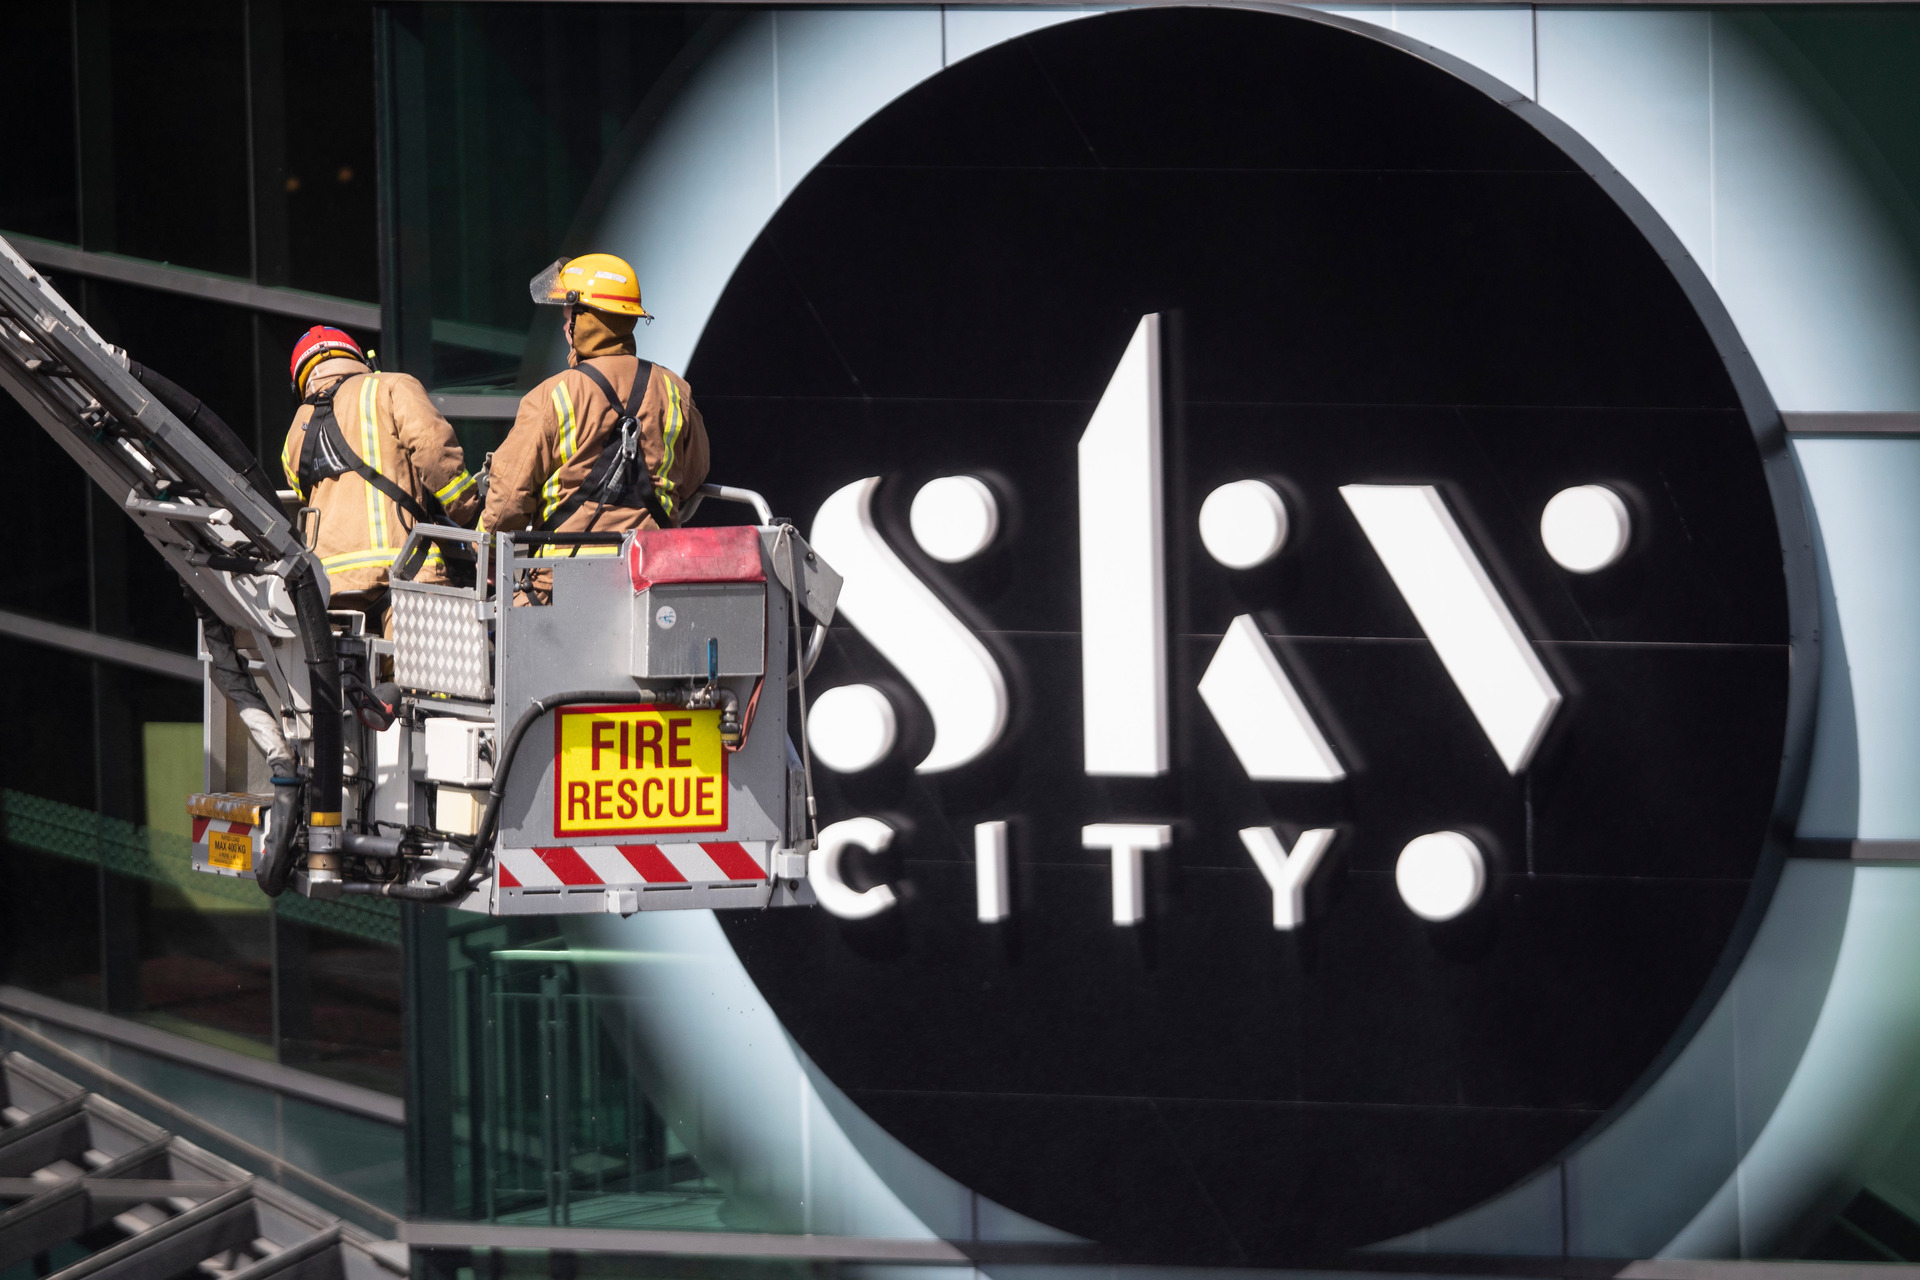 Skycity fire: 'Work from home', what you need to know for tomorrow's commute